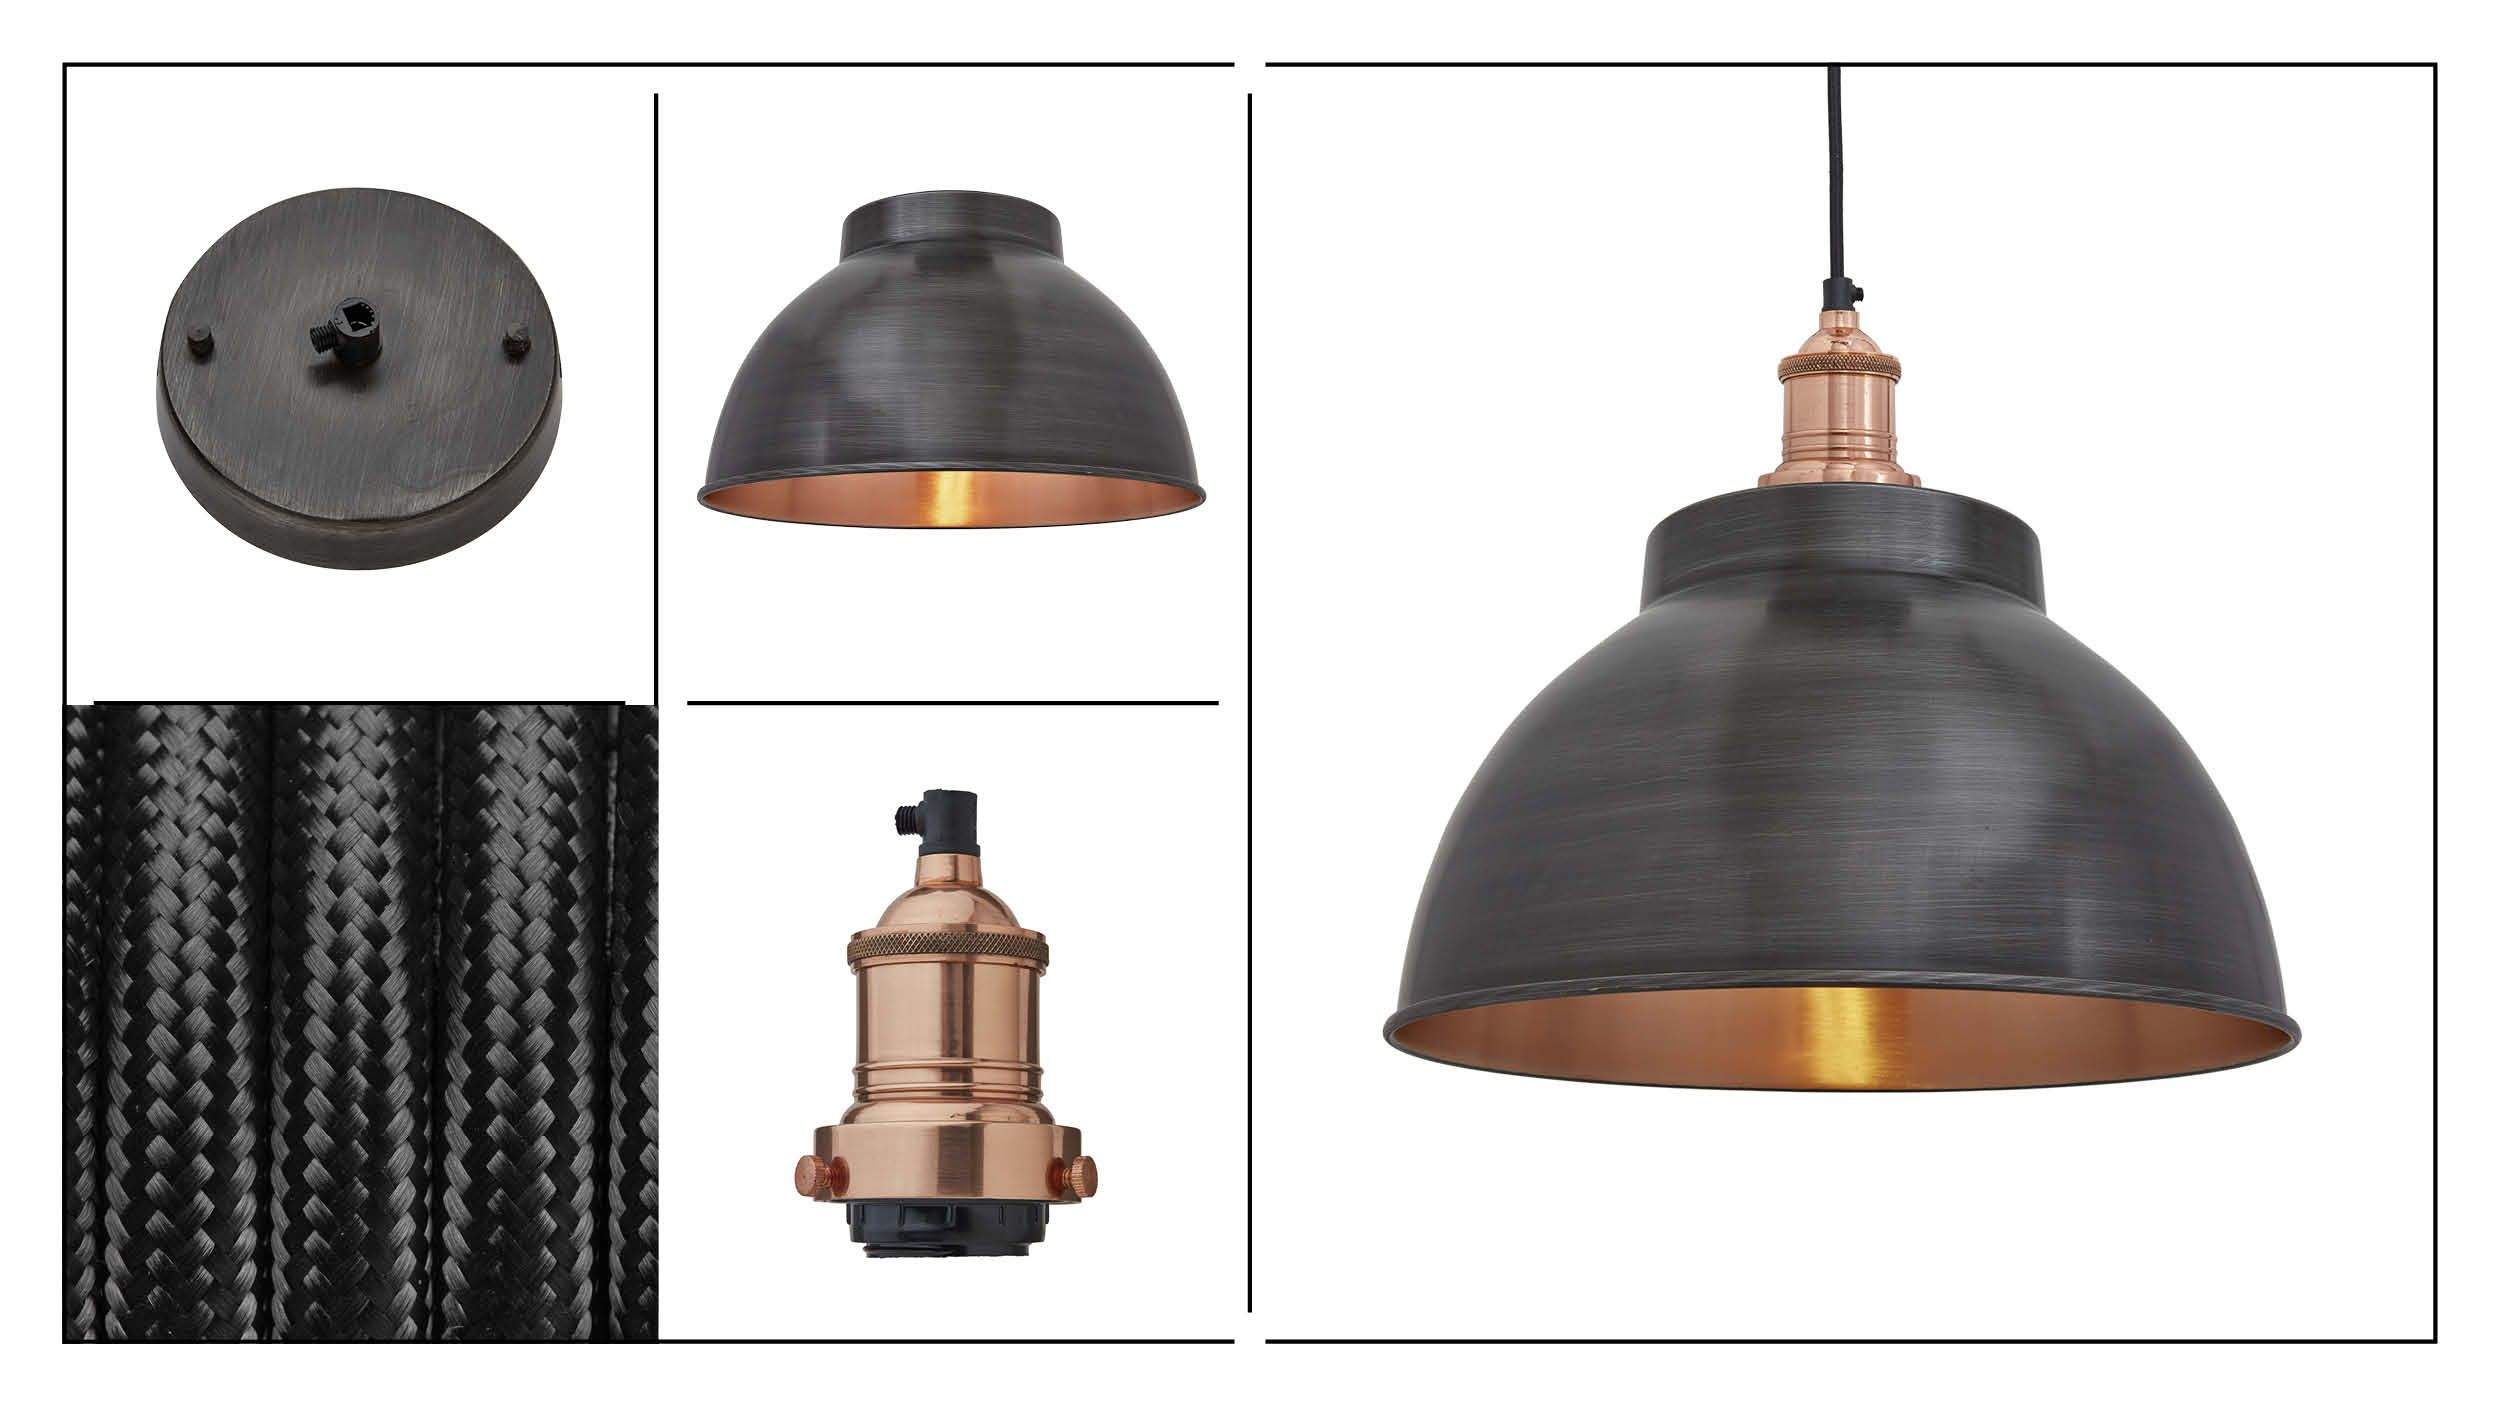 Industville Offers A Range Of Industrial Lighting Accessories And Components That Can Repair Or Re Vintage Industrial Lighting Retro Lighting Light Accessories